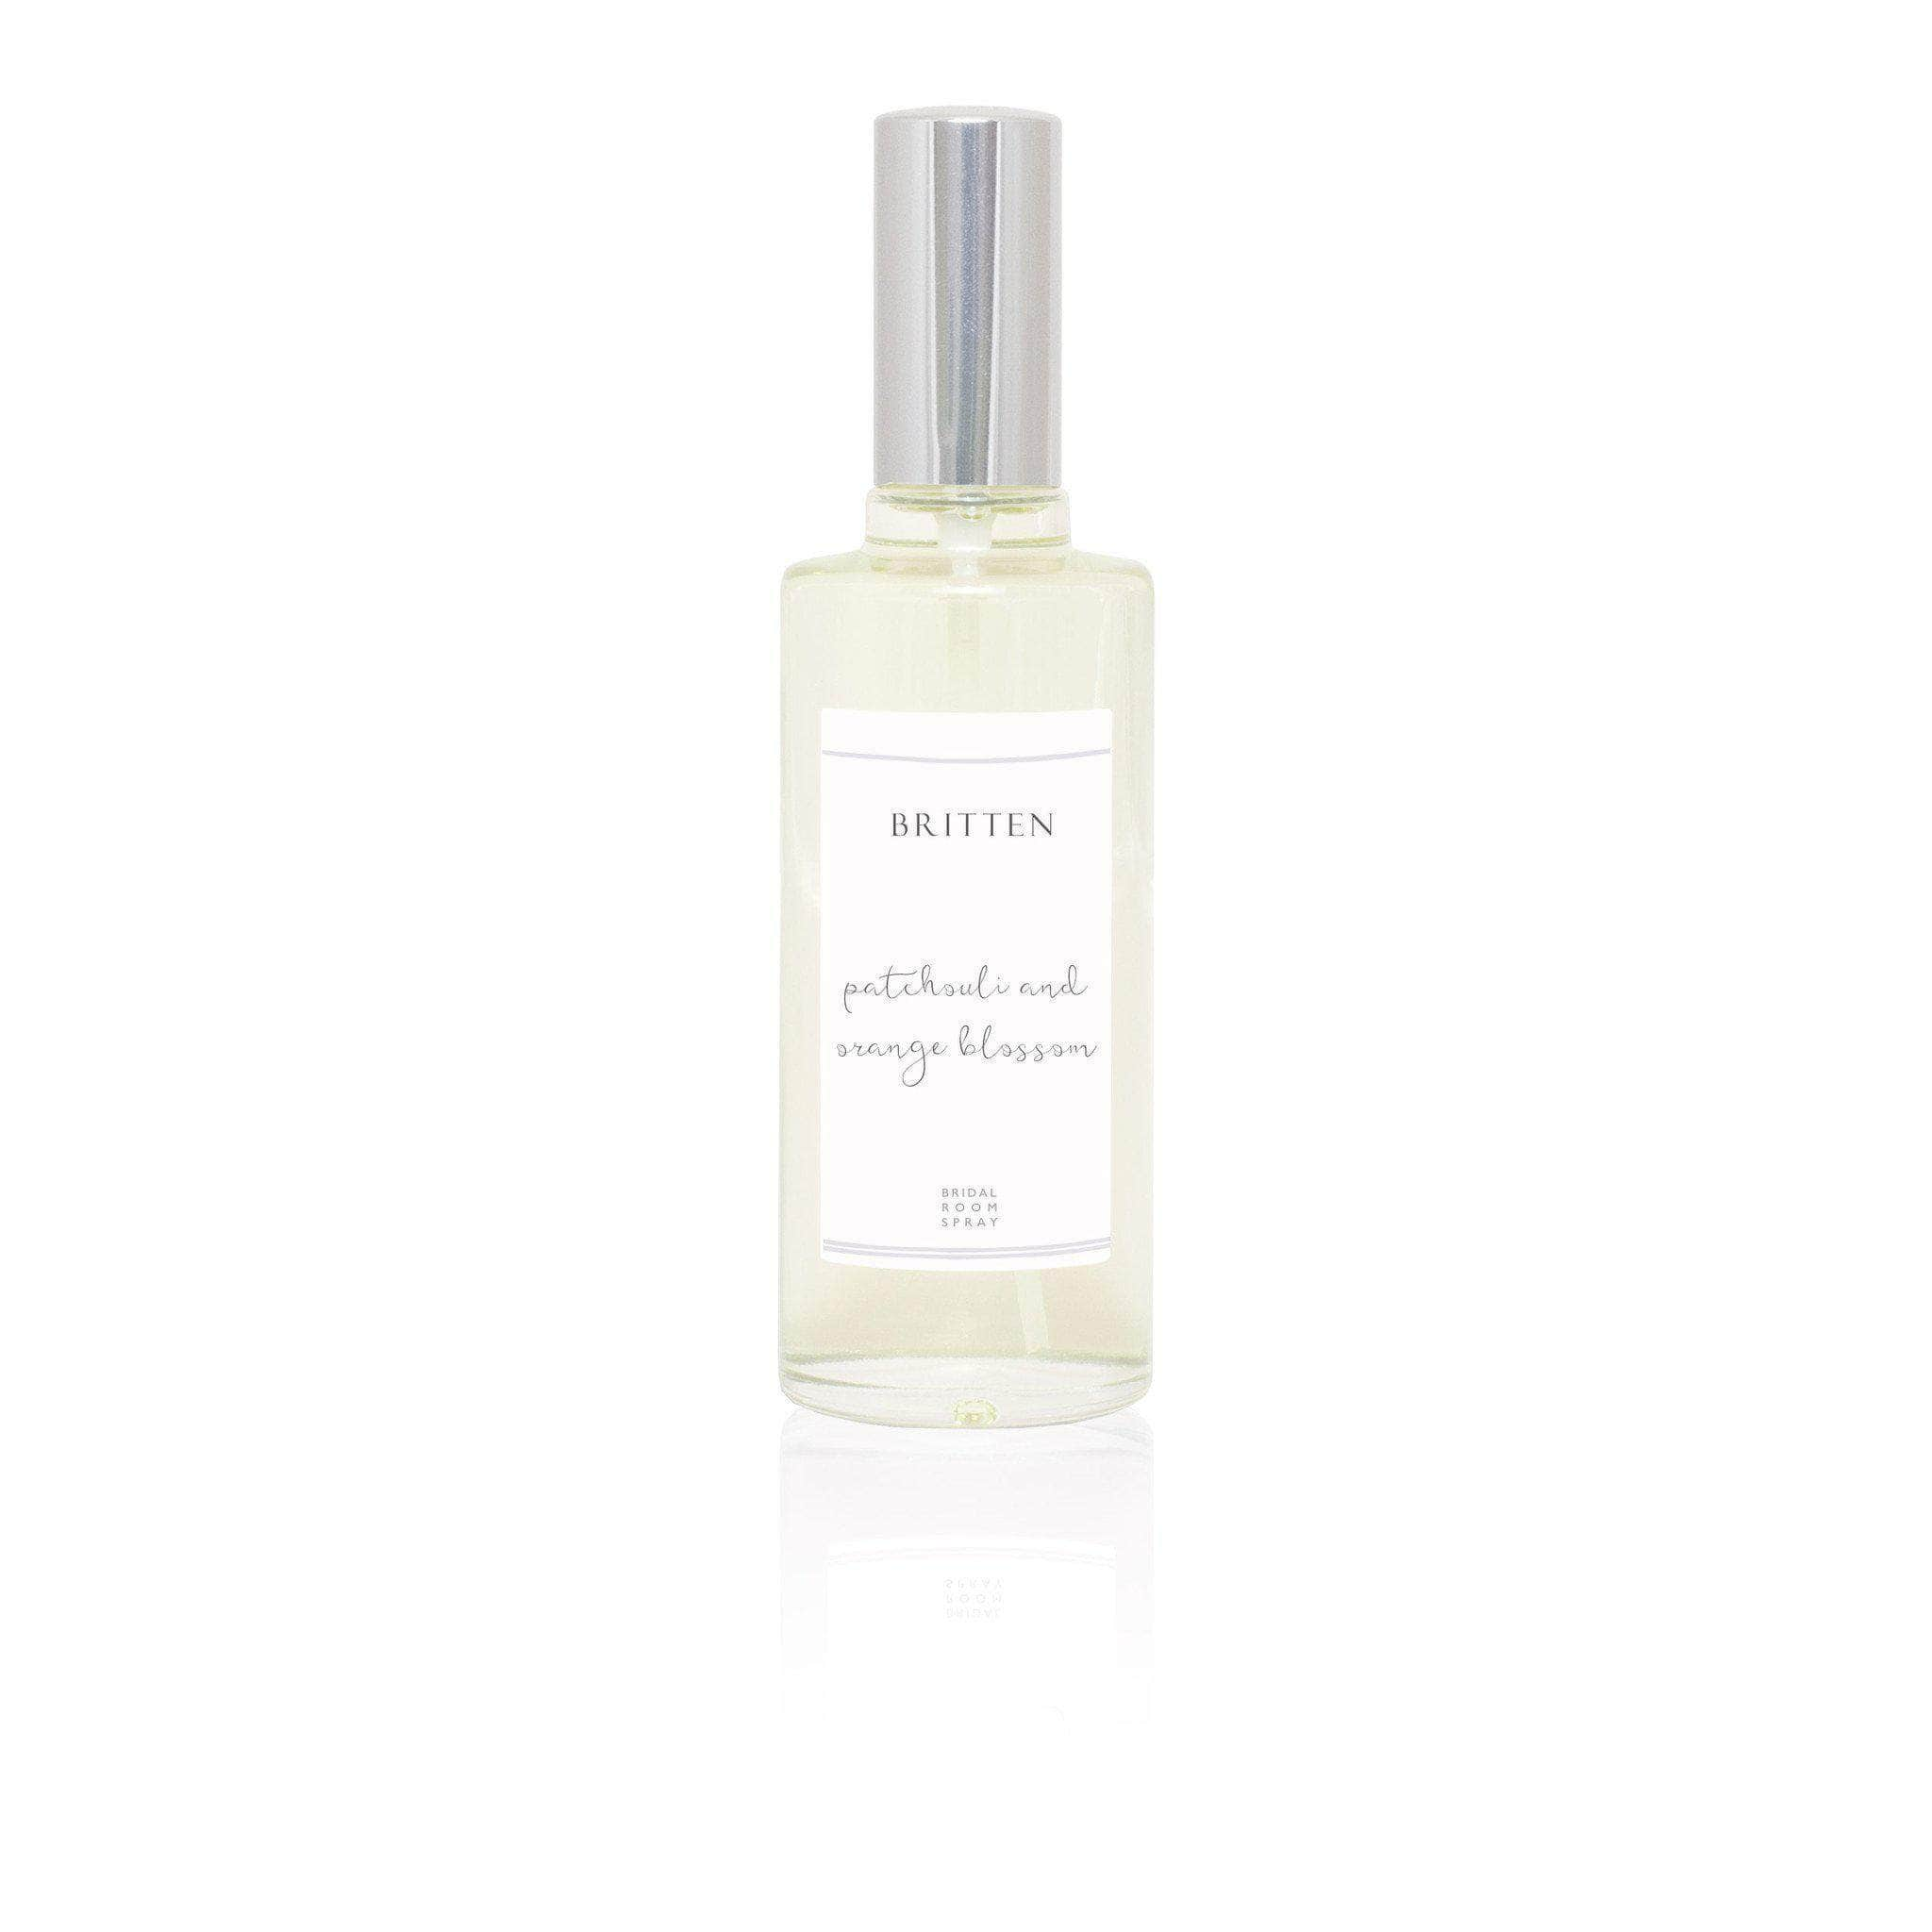 Patchouli & Orange Blossom Essential Oils Luxury Room Spray